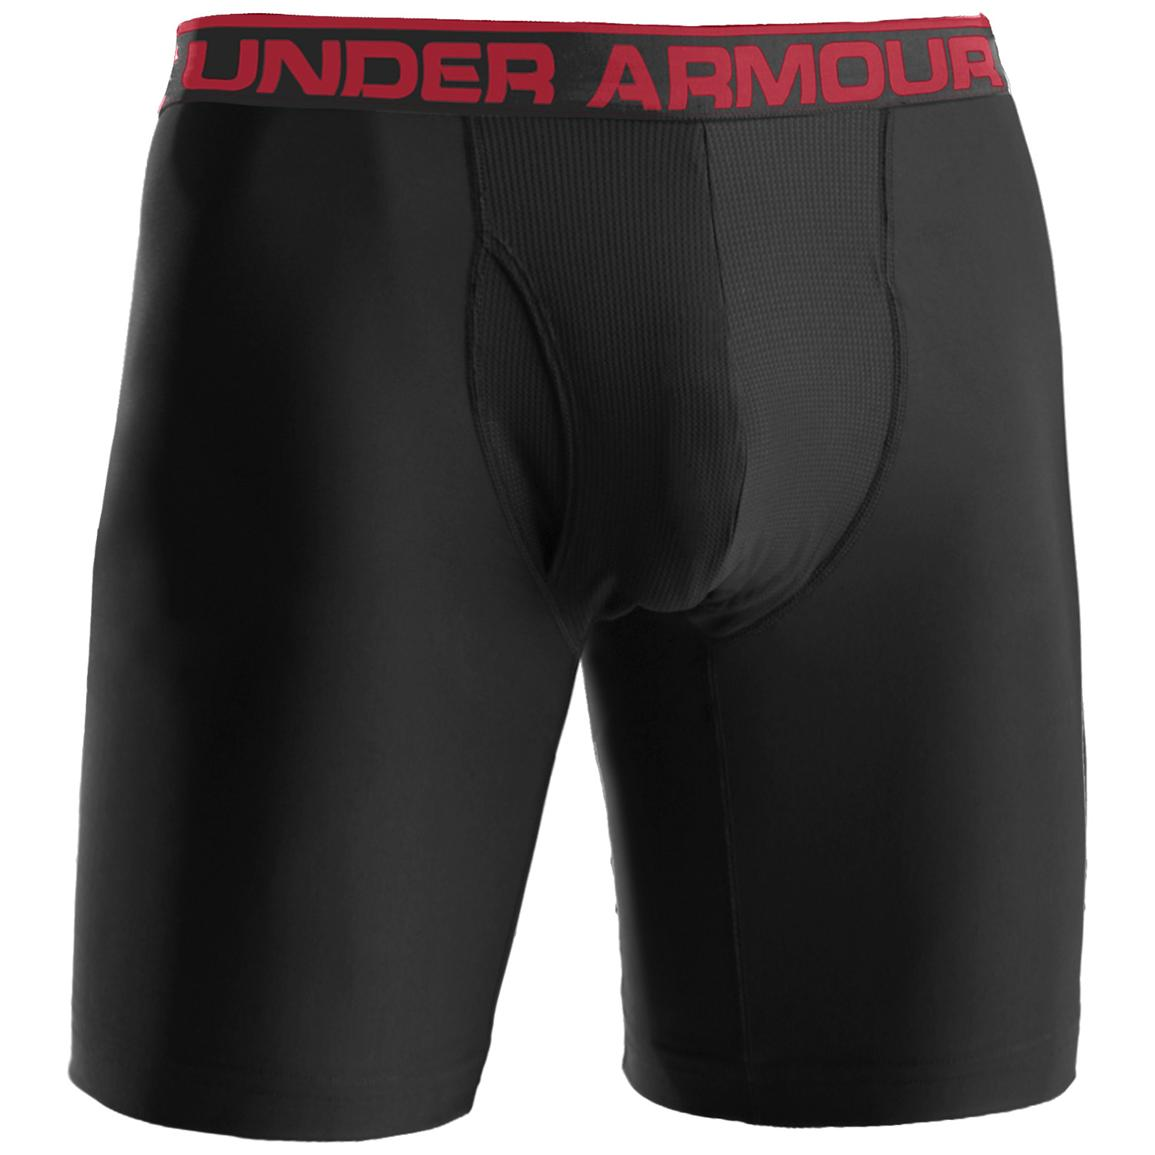 Men's Under Armour® Original 9 inch Boxerjock® Boxer Briefs